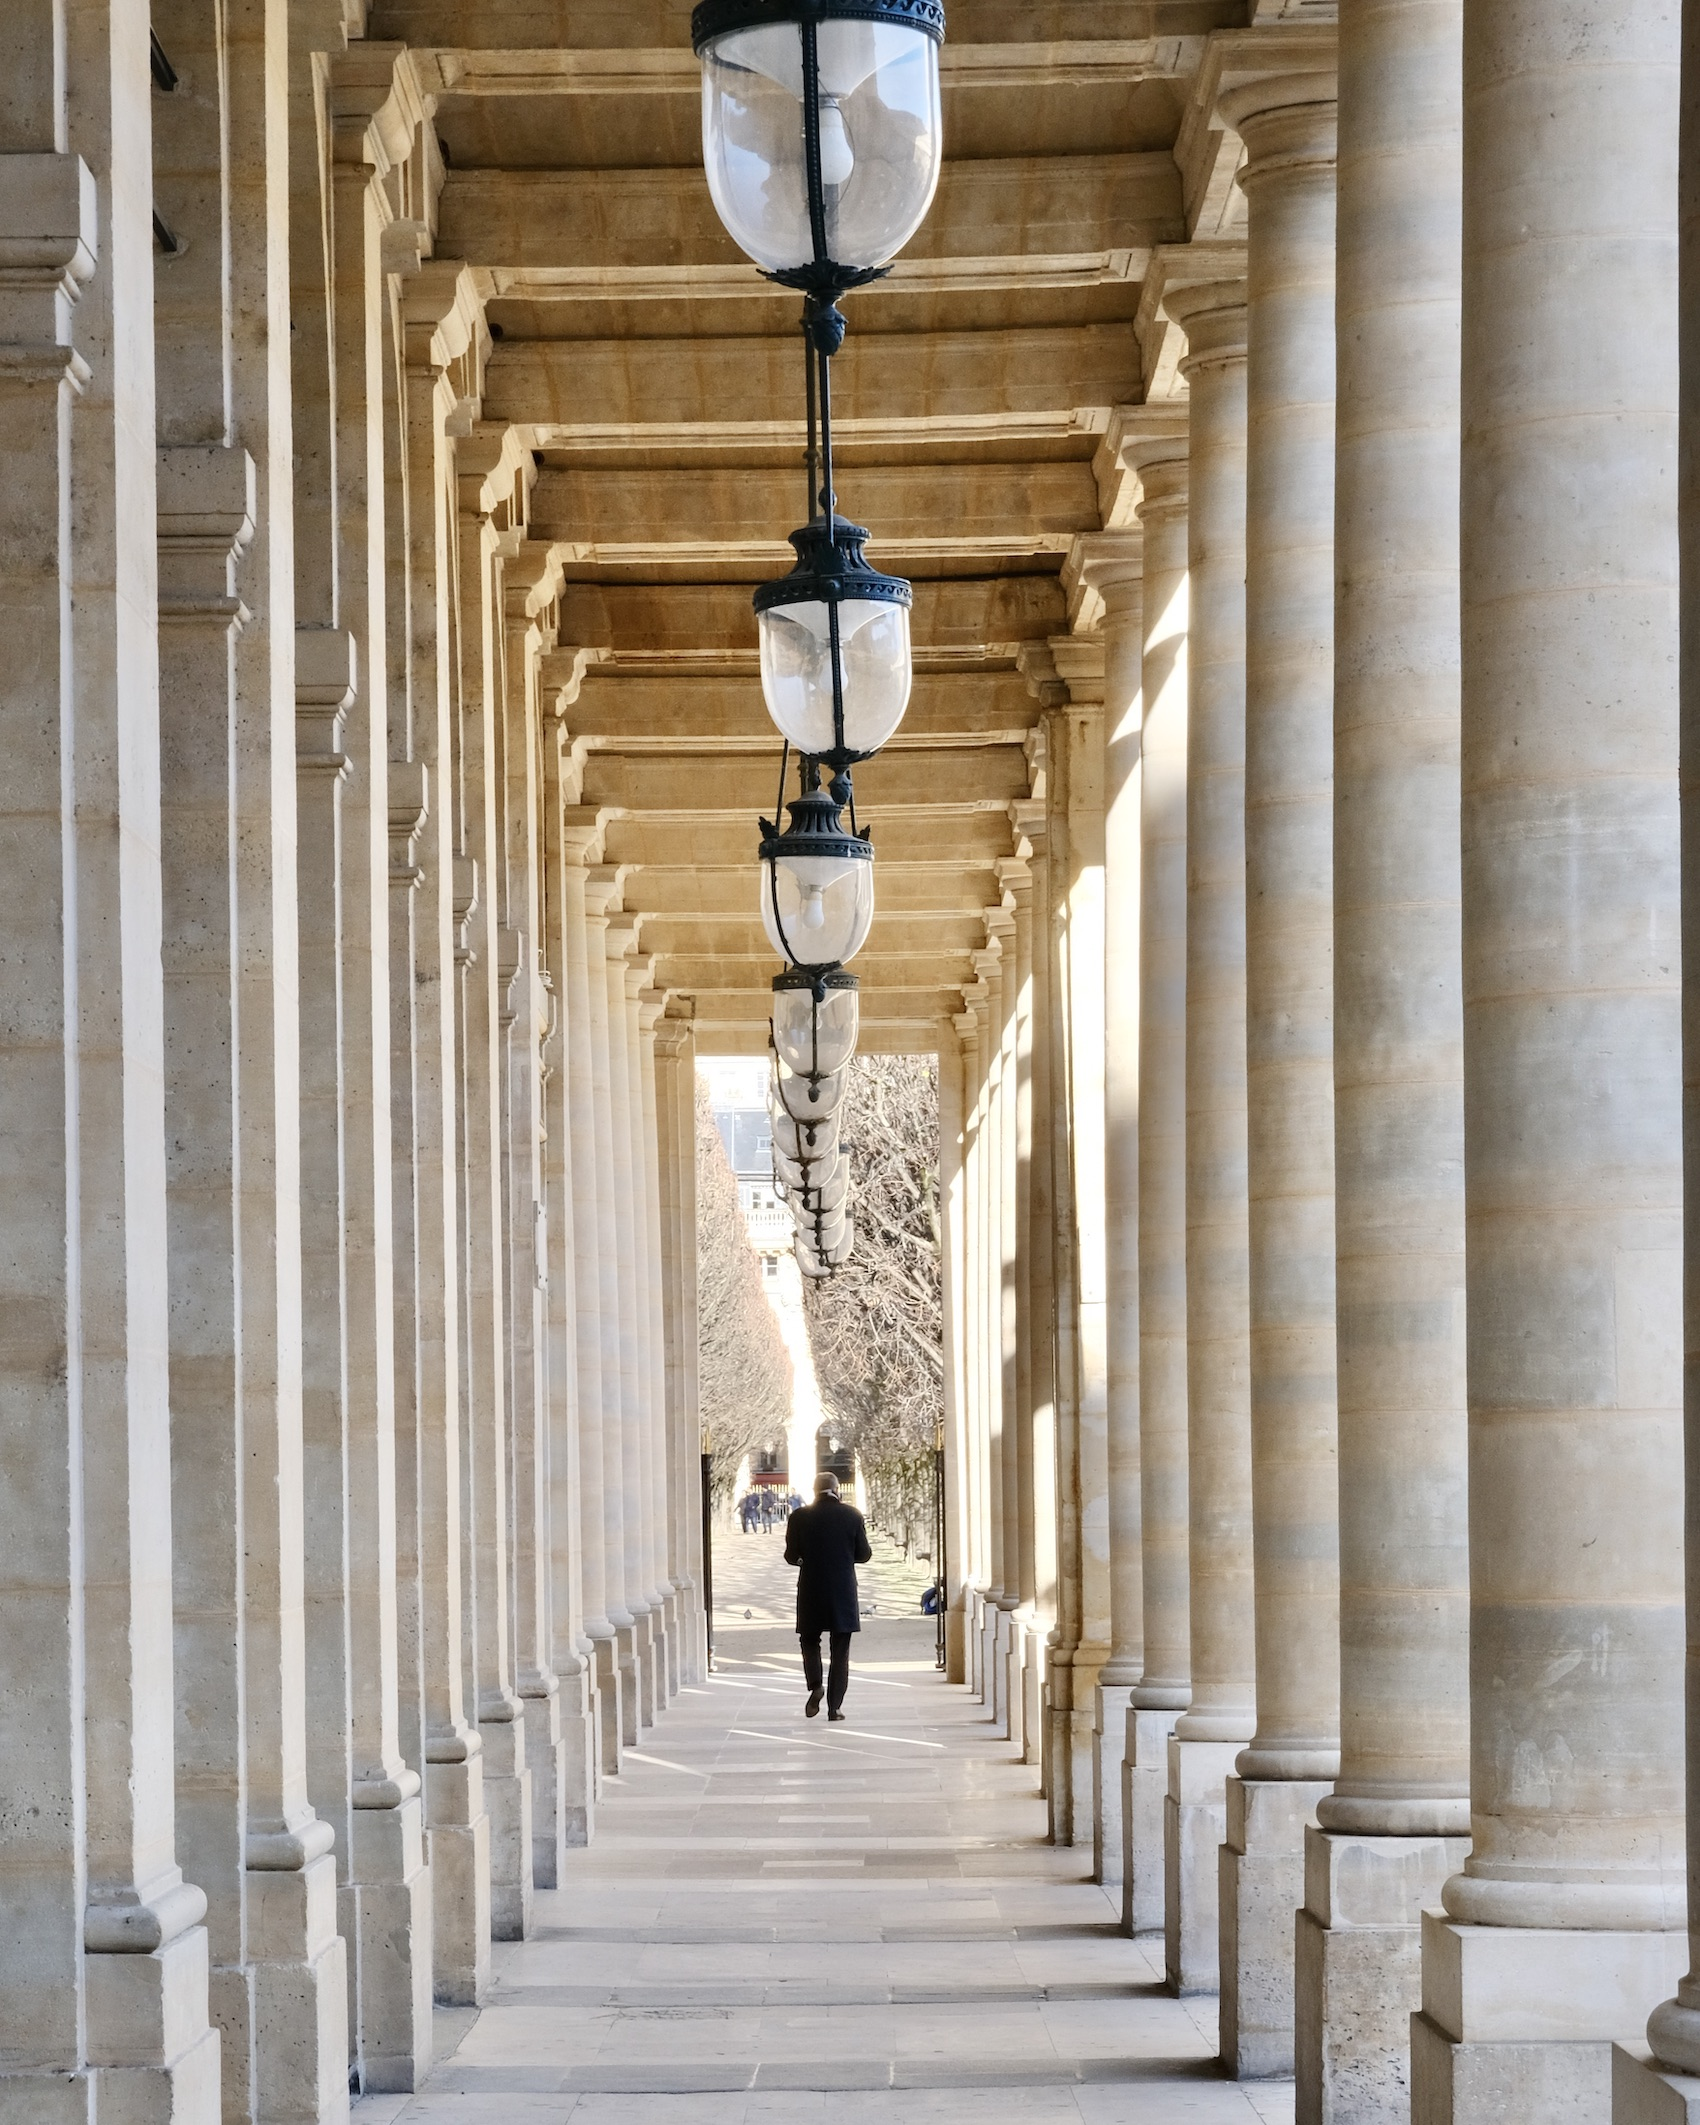 Stroll through Palais Royal